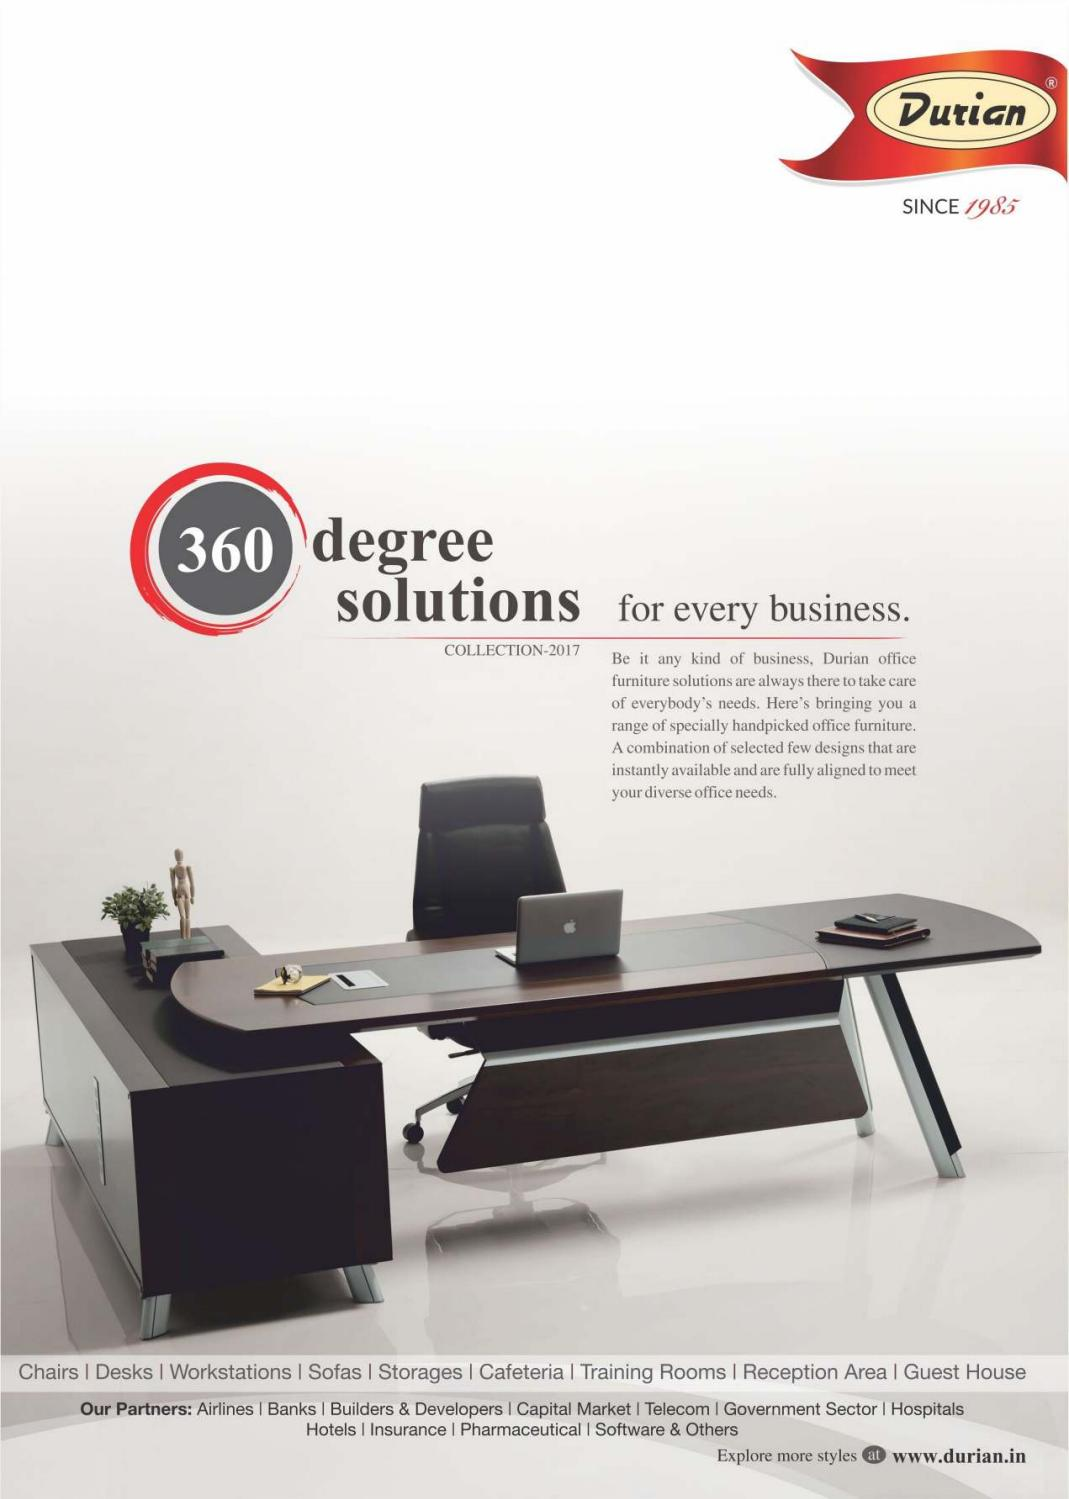 Office Solutions For Every Business At Durian By Furniture Issuu